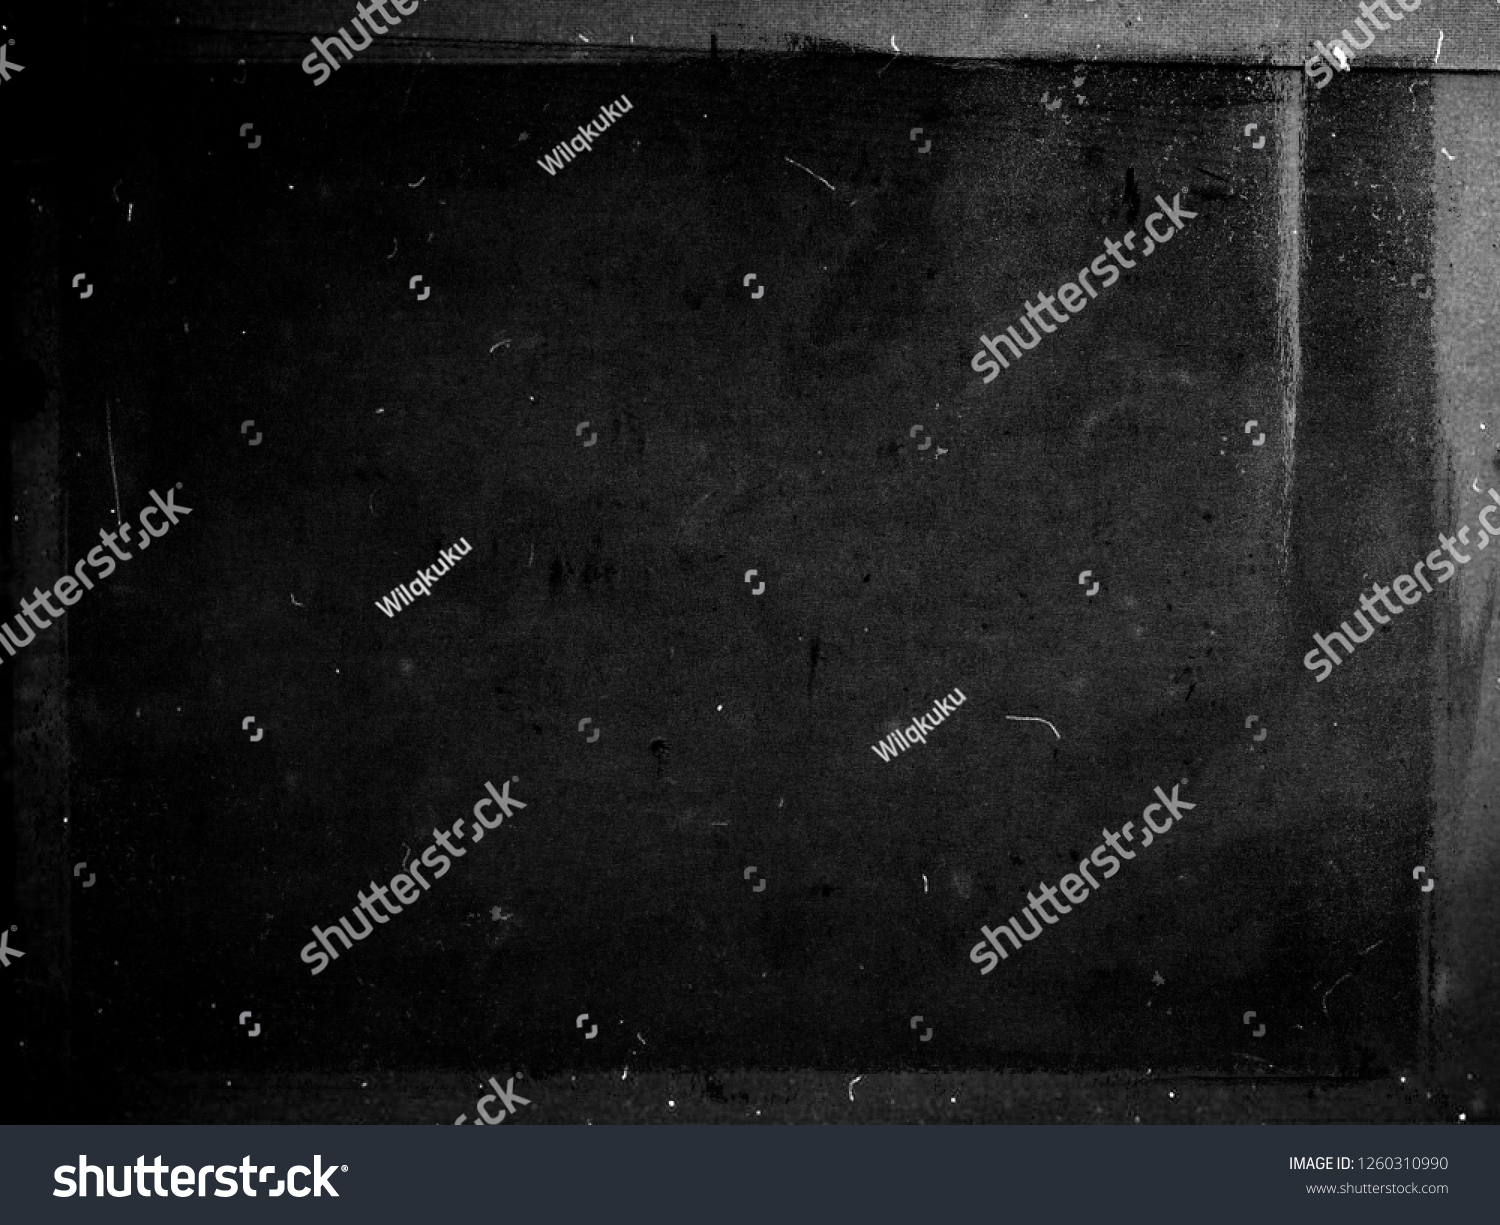 Black grunge scratched scary background with frame, distressed chalkboard, old film effect, copy space #1260310990